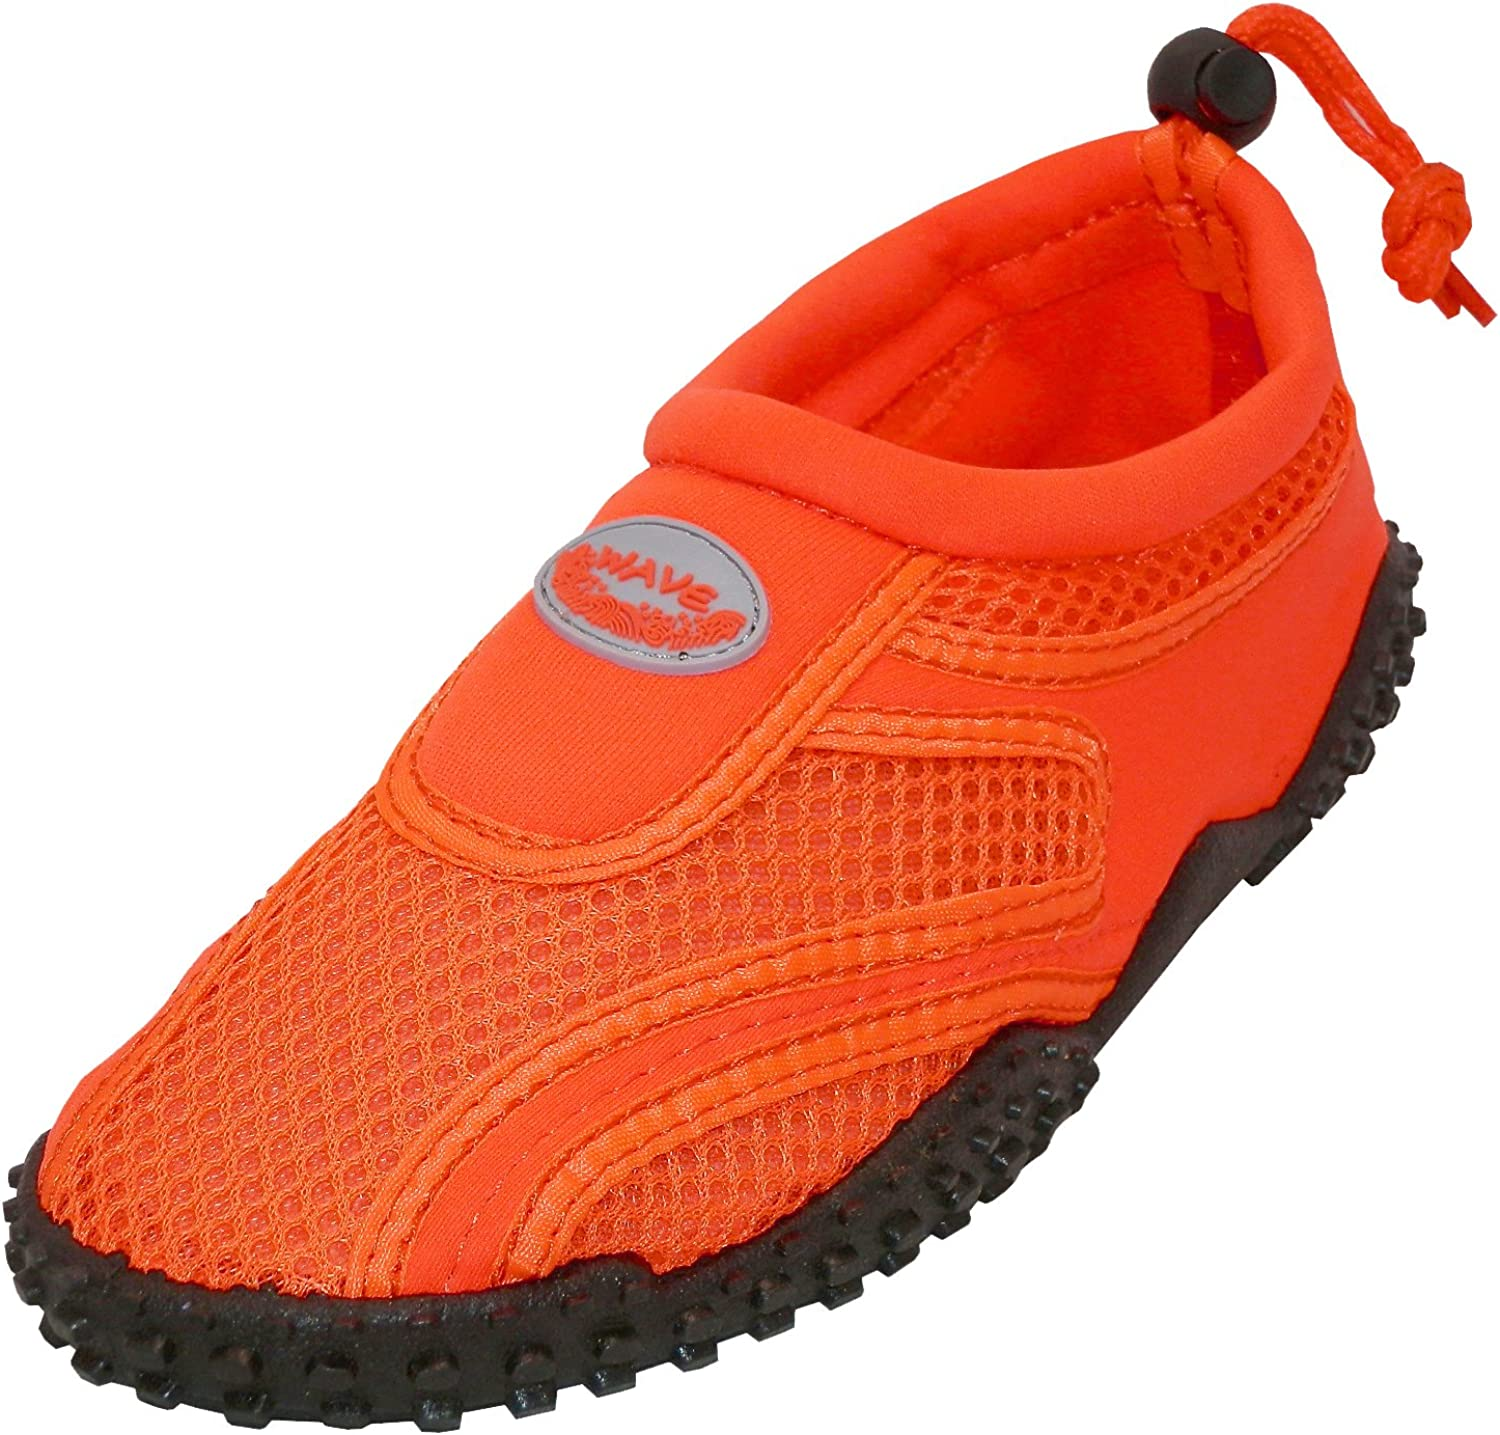 Cambridge Select Women's Closed Toe Mesh Quick Dry Drawstring Slip-On Water shoes